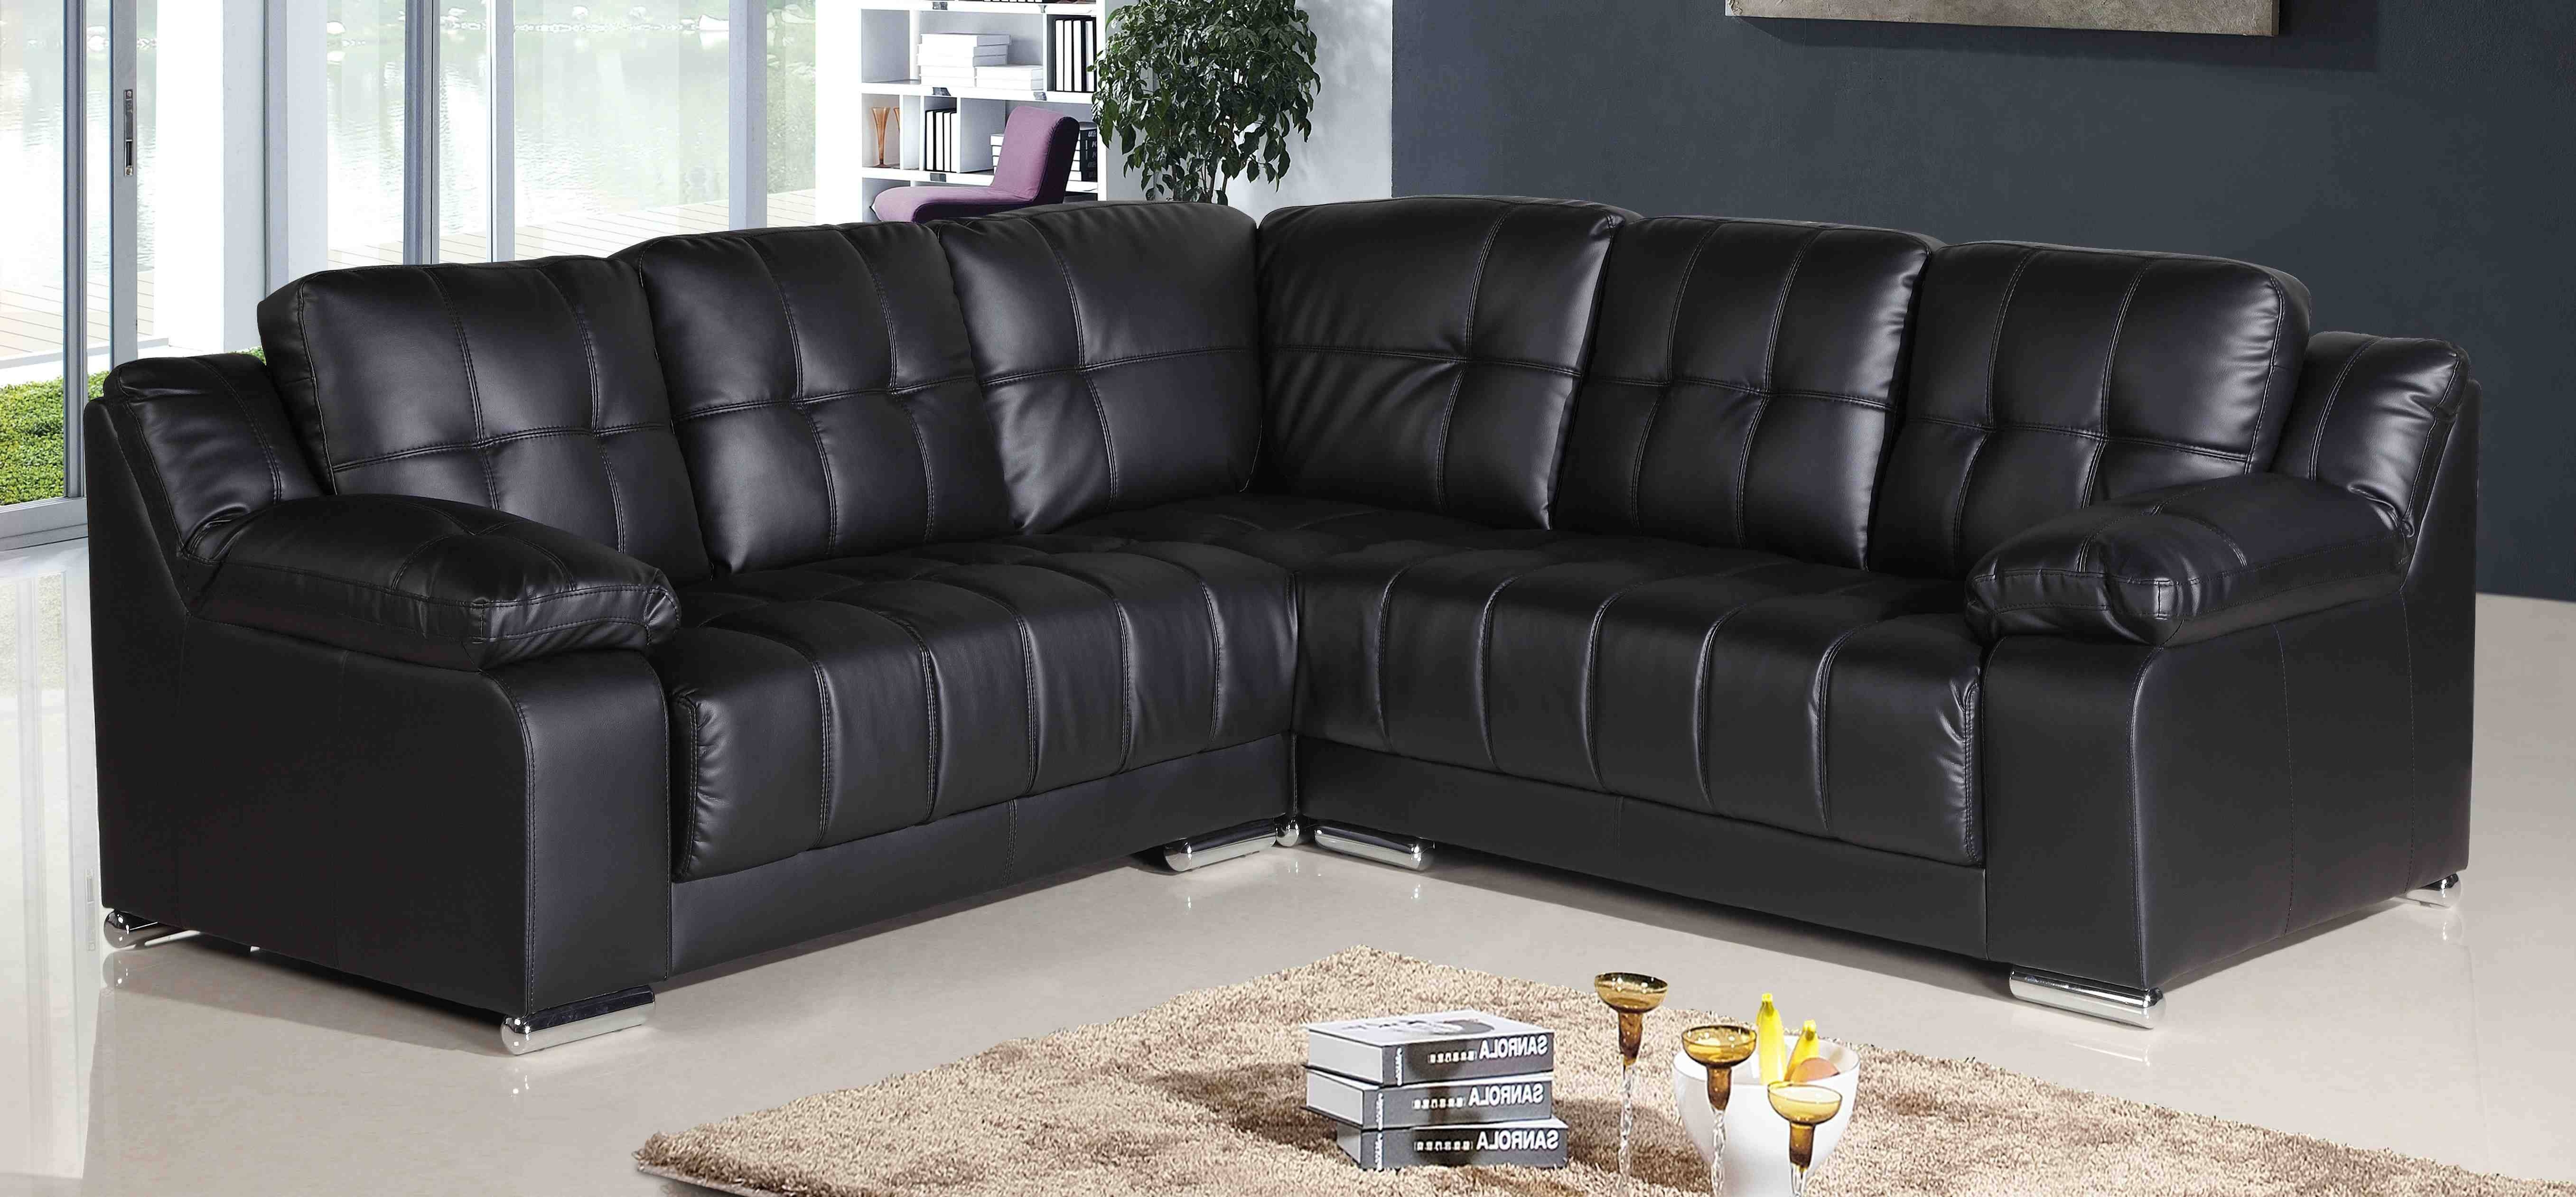 Sofas Center : Curved Sofa Couch Furniture Sectional Sofas For for Large Black Leather Corner Sofas (Image 24 of 30)